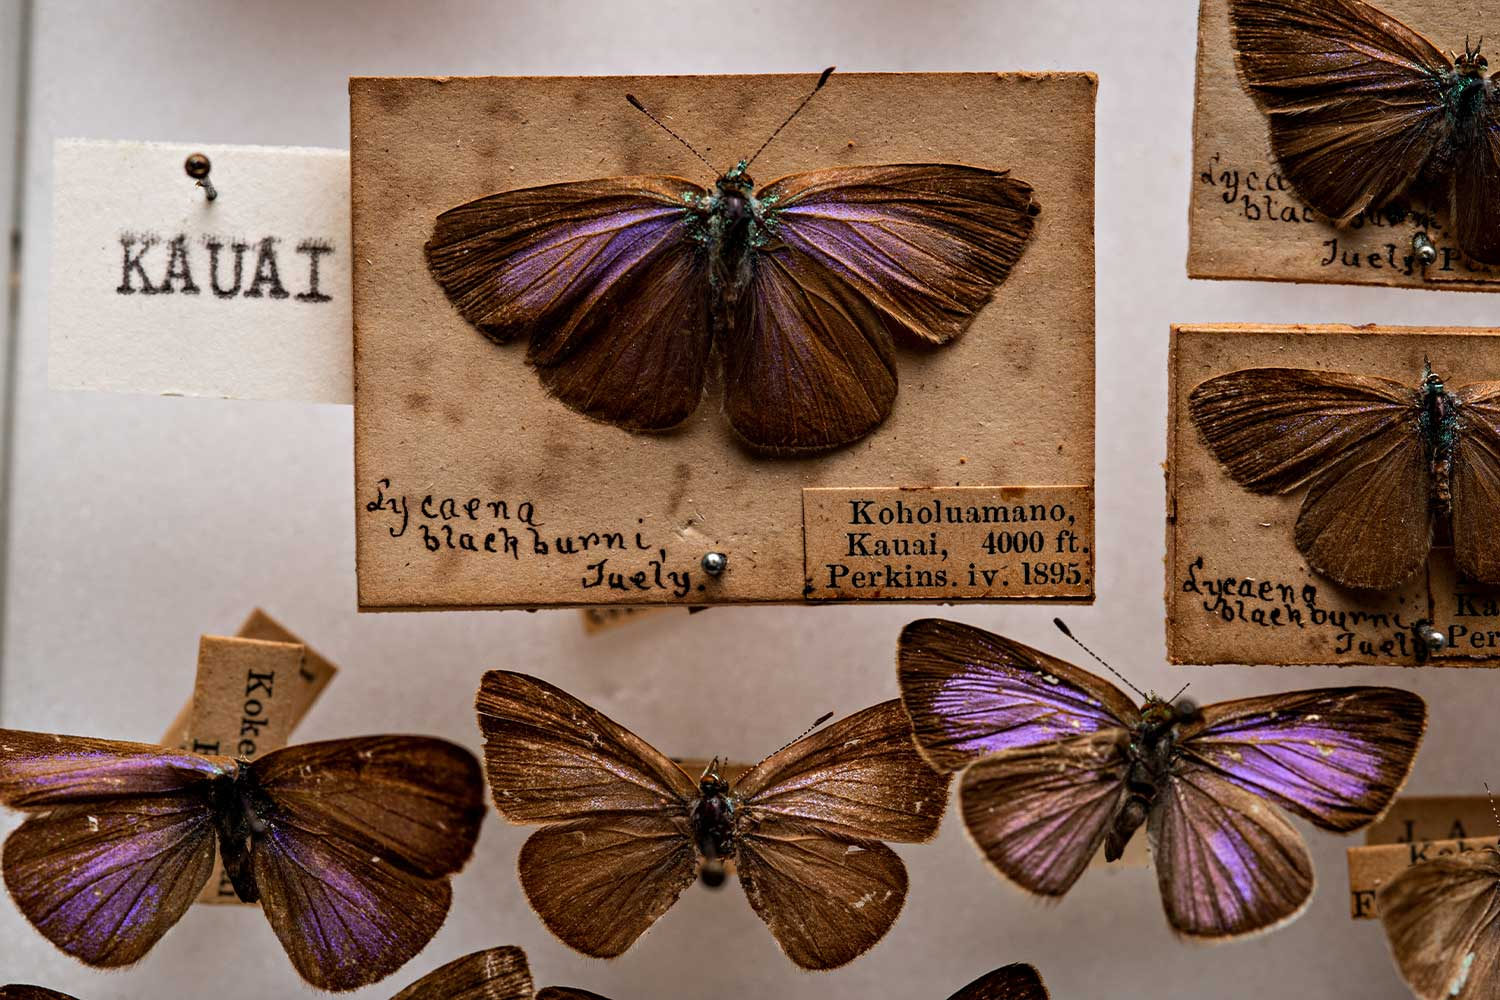 Display cards of a purple detailed butterfly